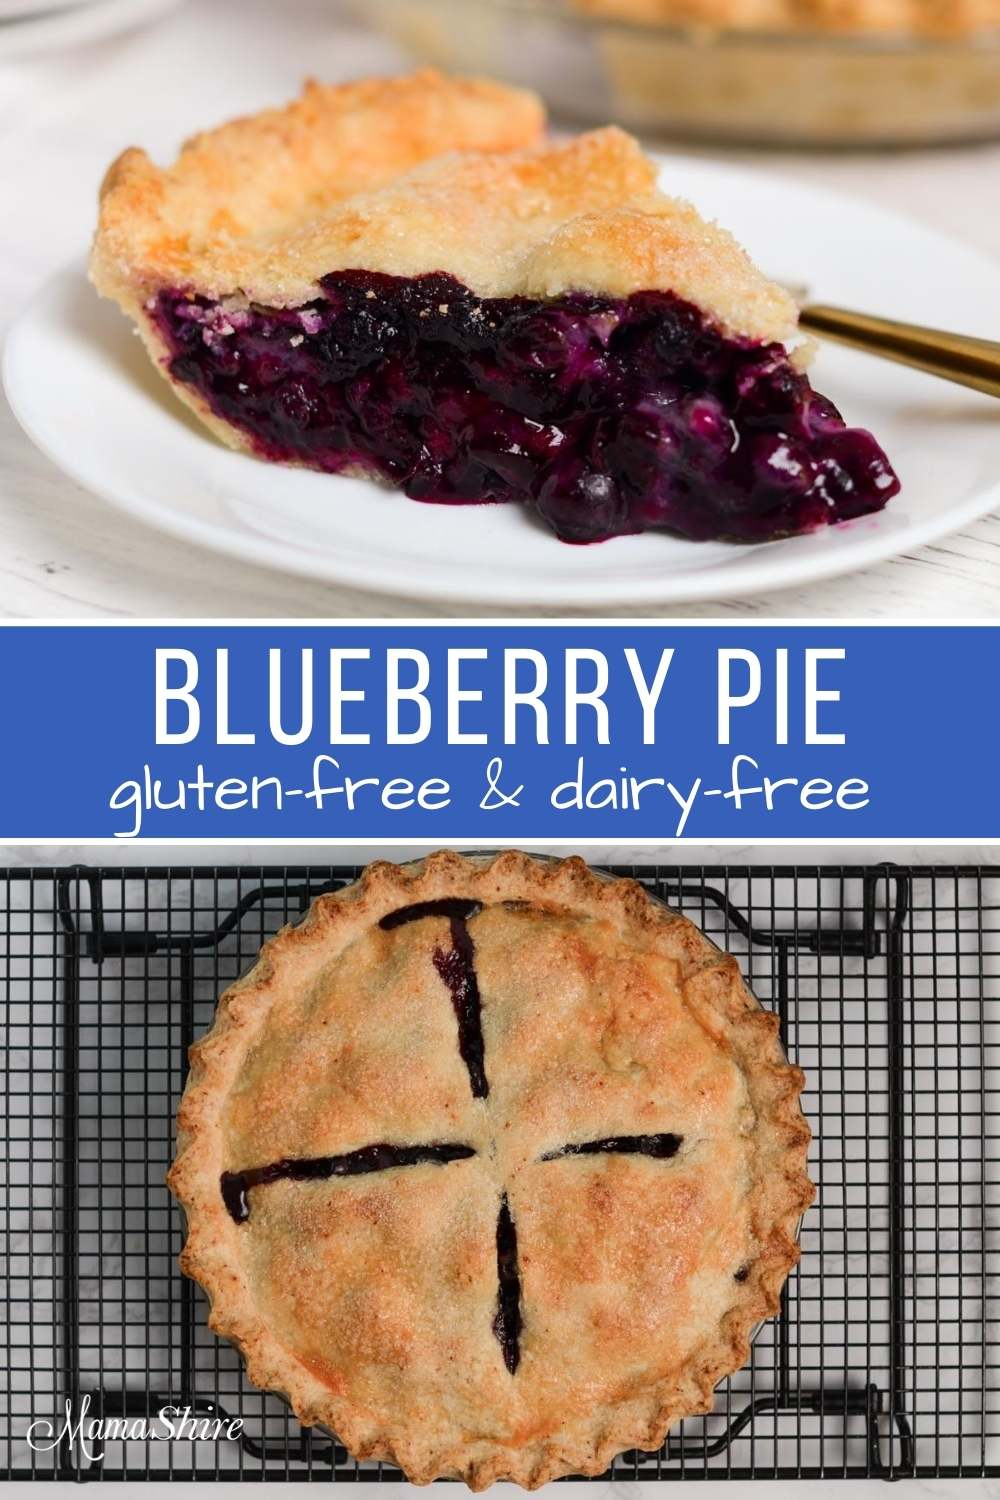 Top picture is one slice of pie, bottom picture is the whole blueberry pie freshly baked.